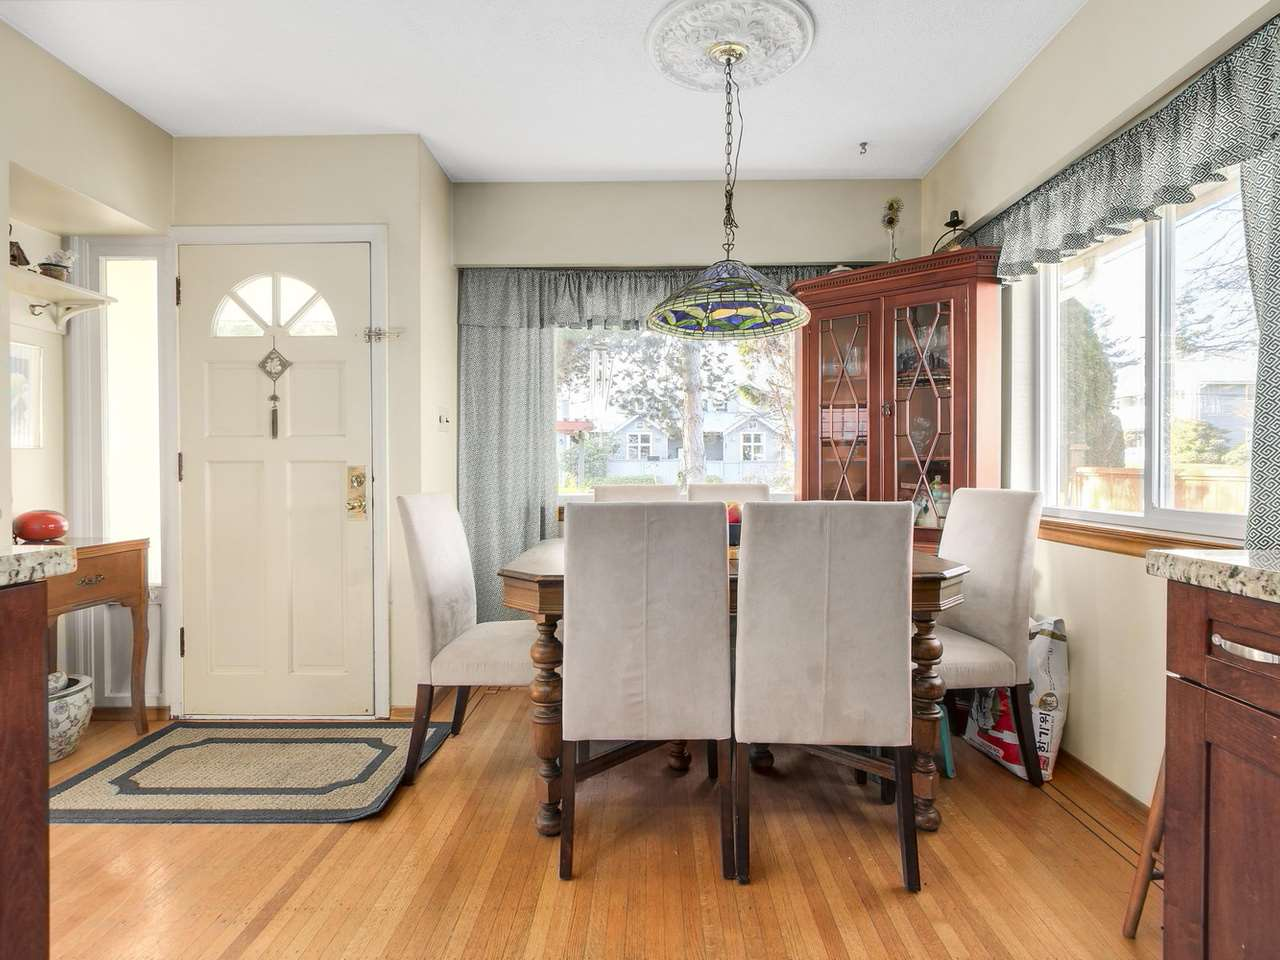 Photo 4: Photos: 1520 MACGOWAN Avenue in North Vancouver: Norgate House for sale : MLS®# R2137032